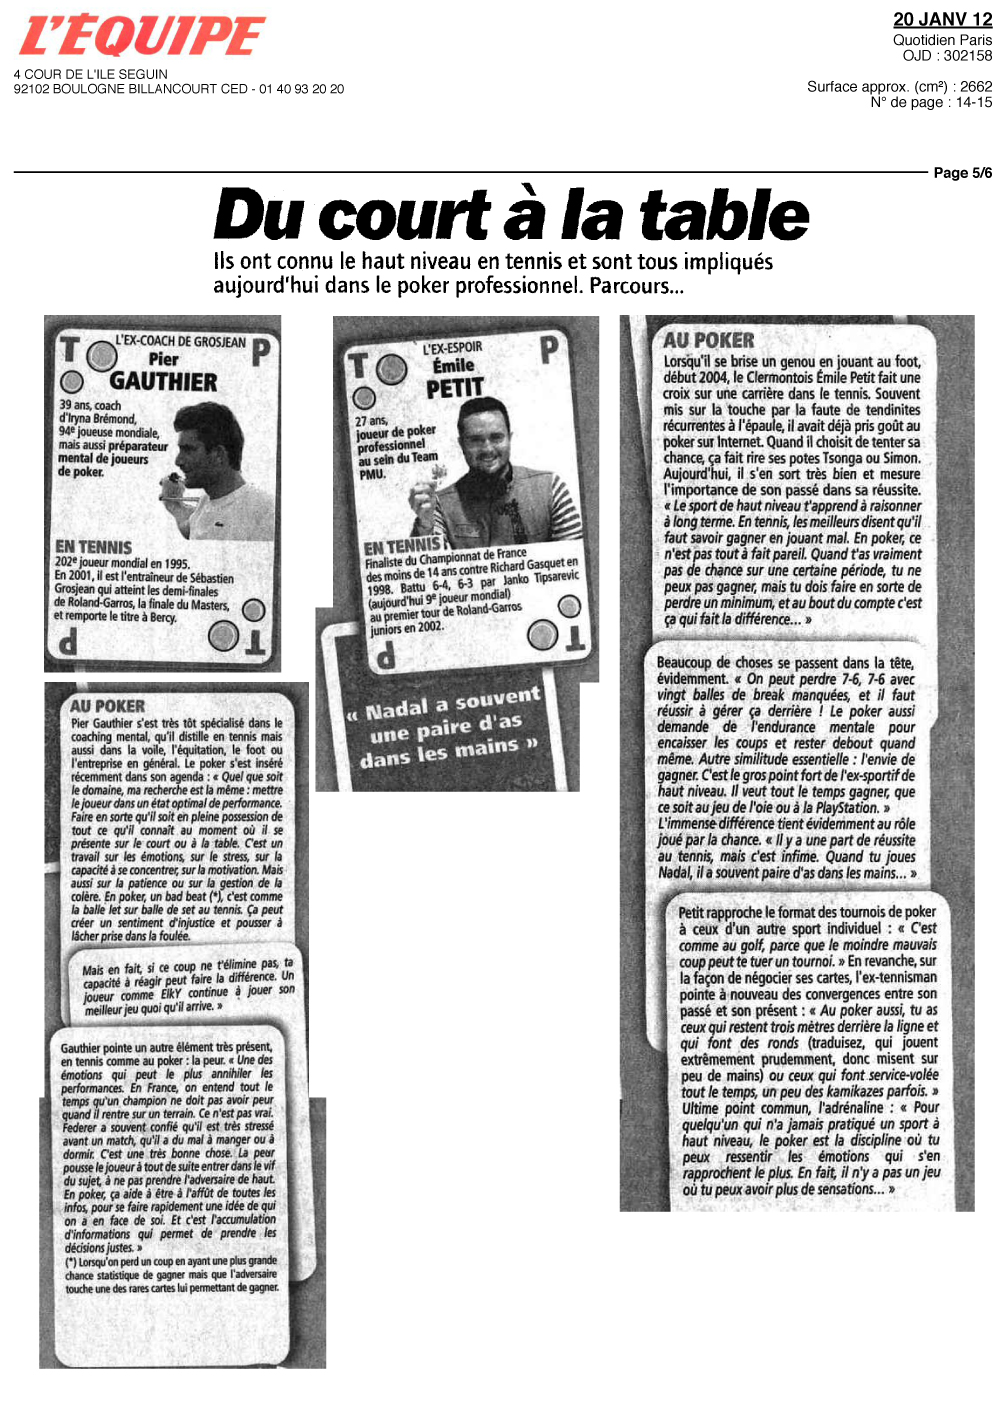 Artricle L'Equipe Coaching Mental dans le Monde du Poker